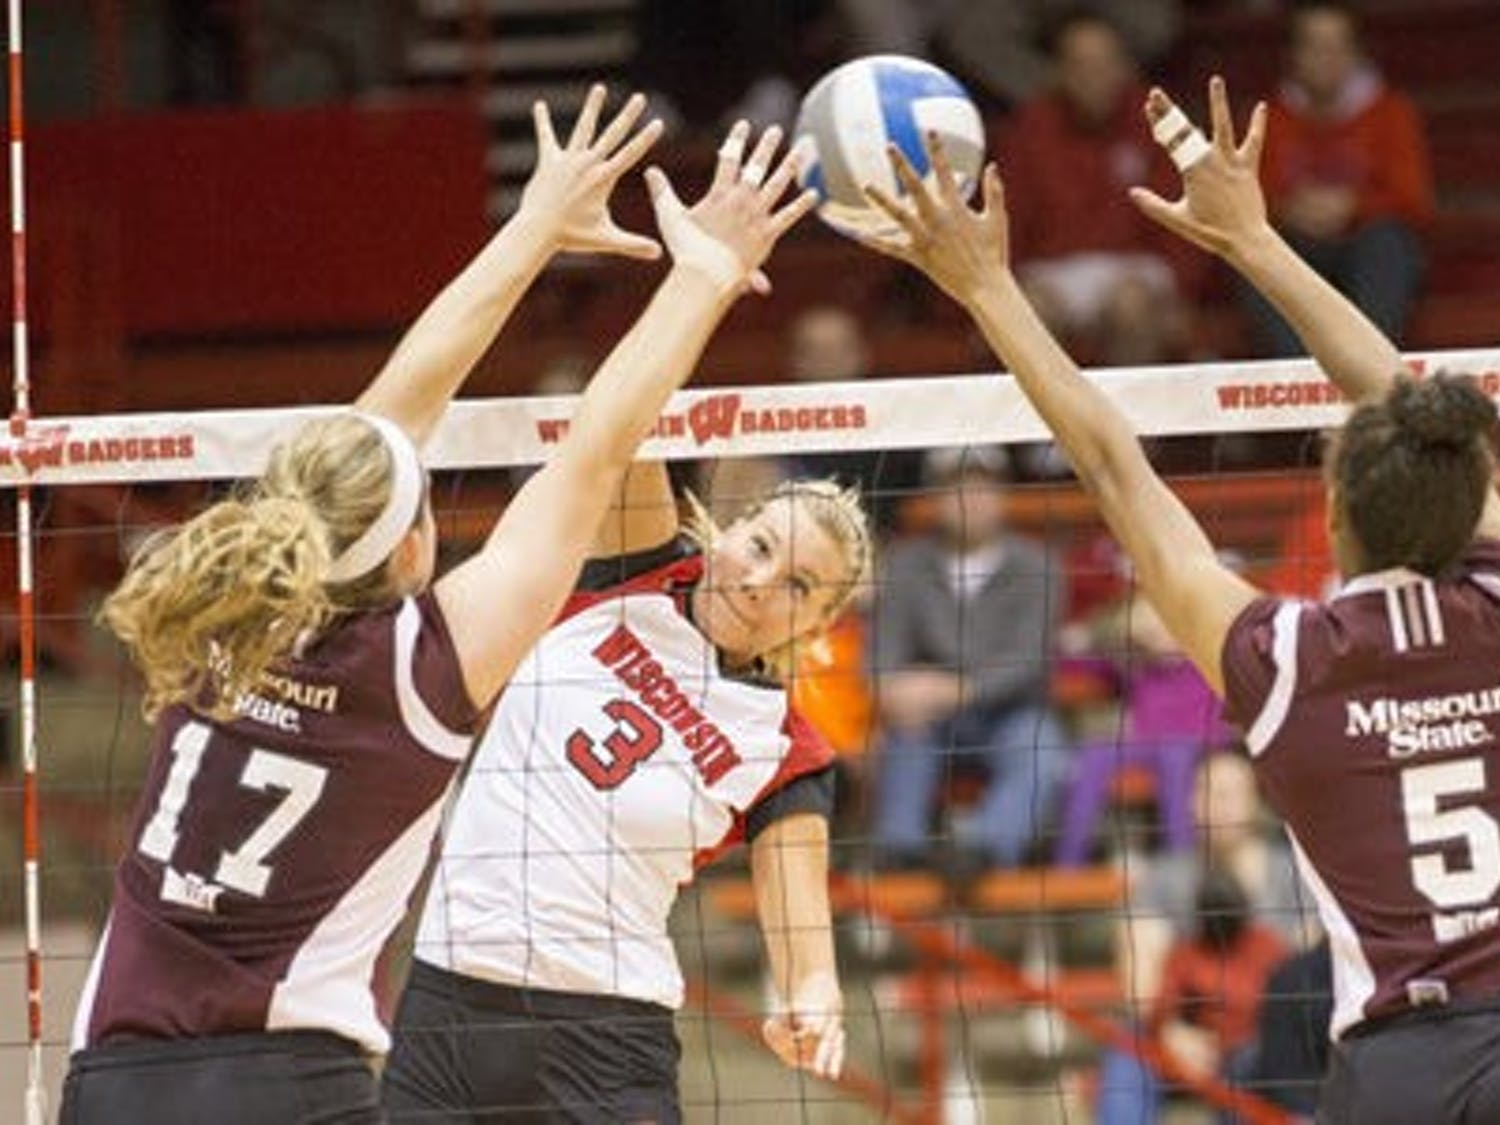 It was a strong weekend for the Badgers, taking down three opponents while dropping only one set. The season's big test should come next weekend in Seattle.